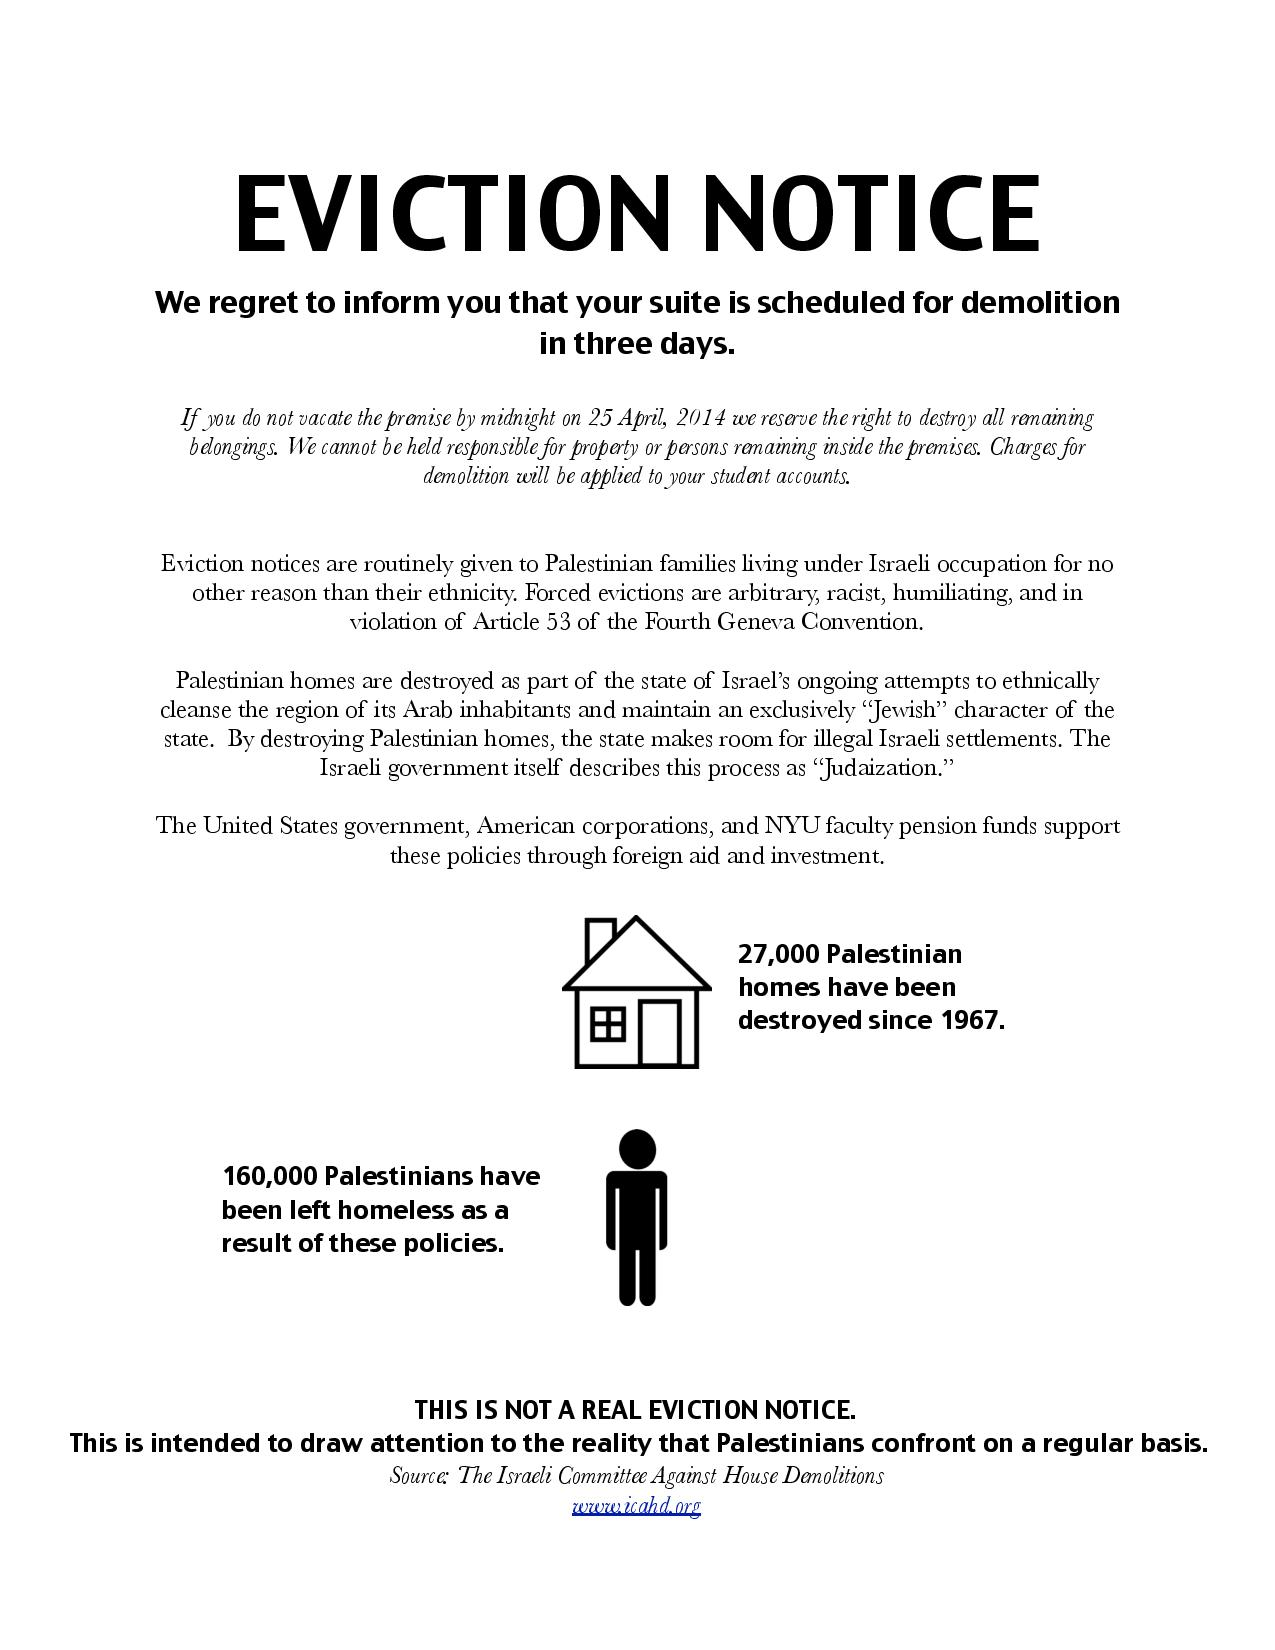 SJP eviction notice distributed in two NYU dormitories in late April, 2014.